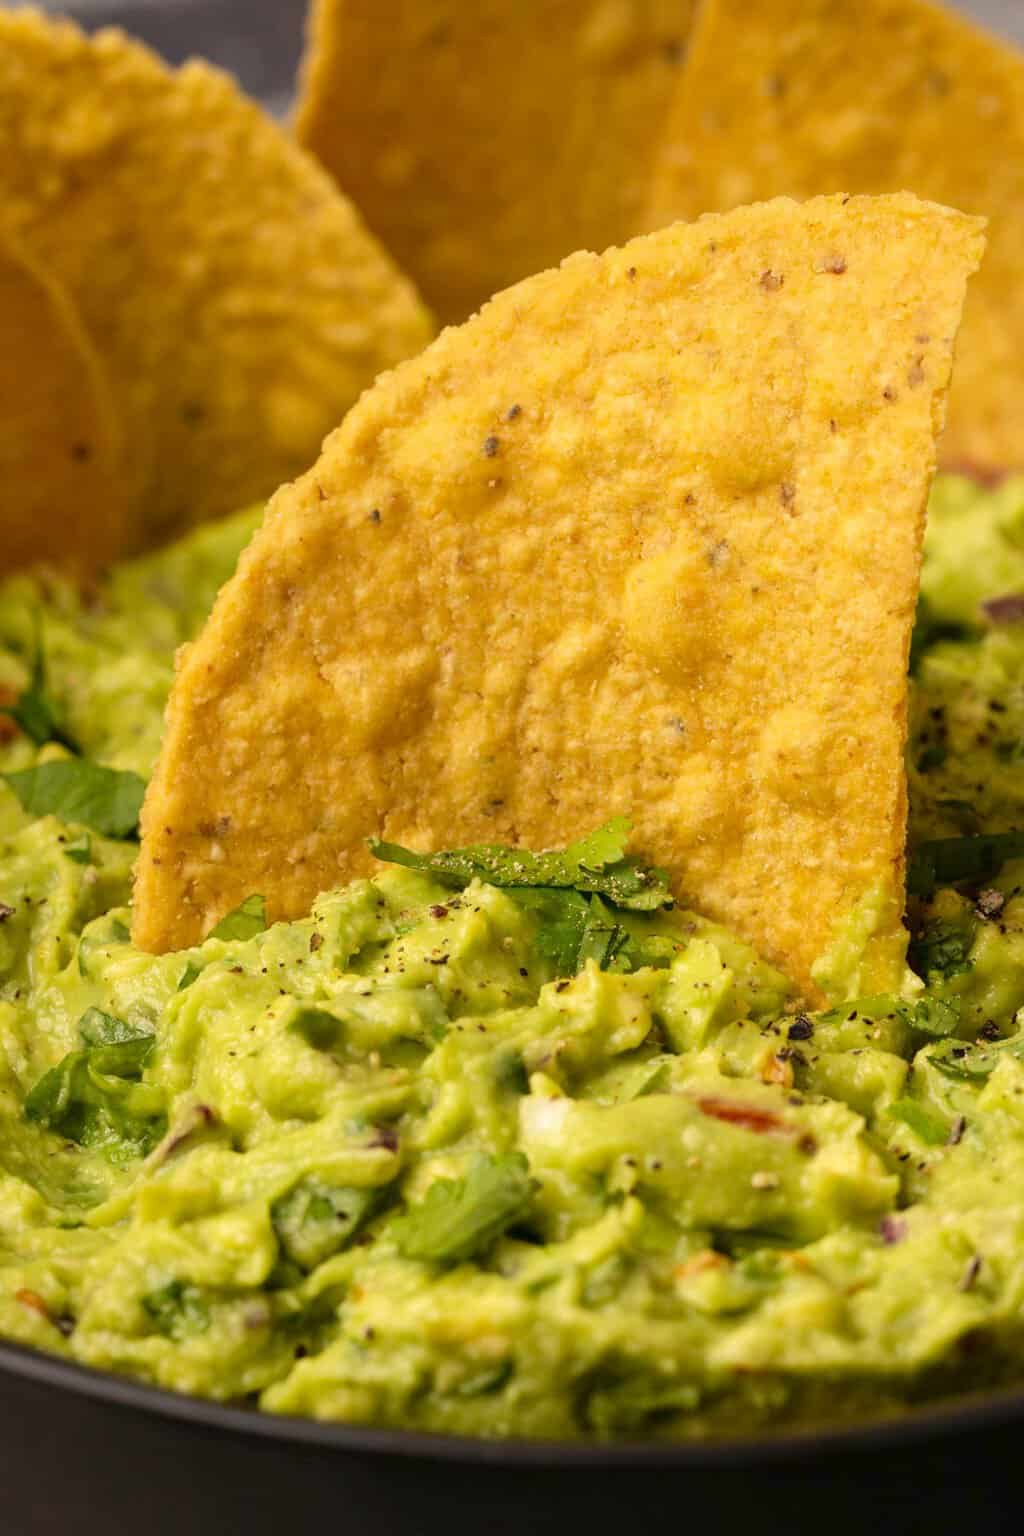 Tortilla chip dipping into a bowl of vegan guacamole.